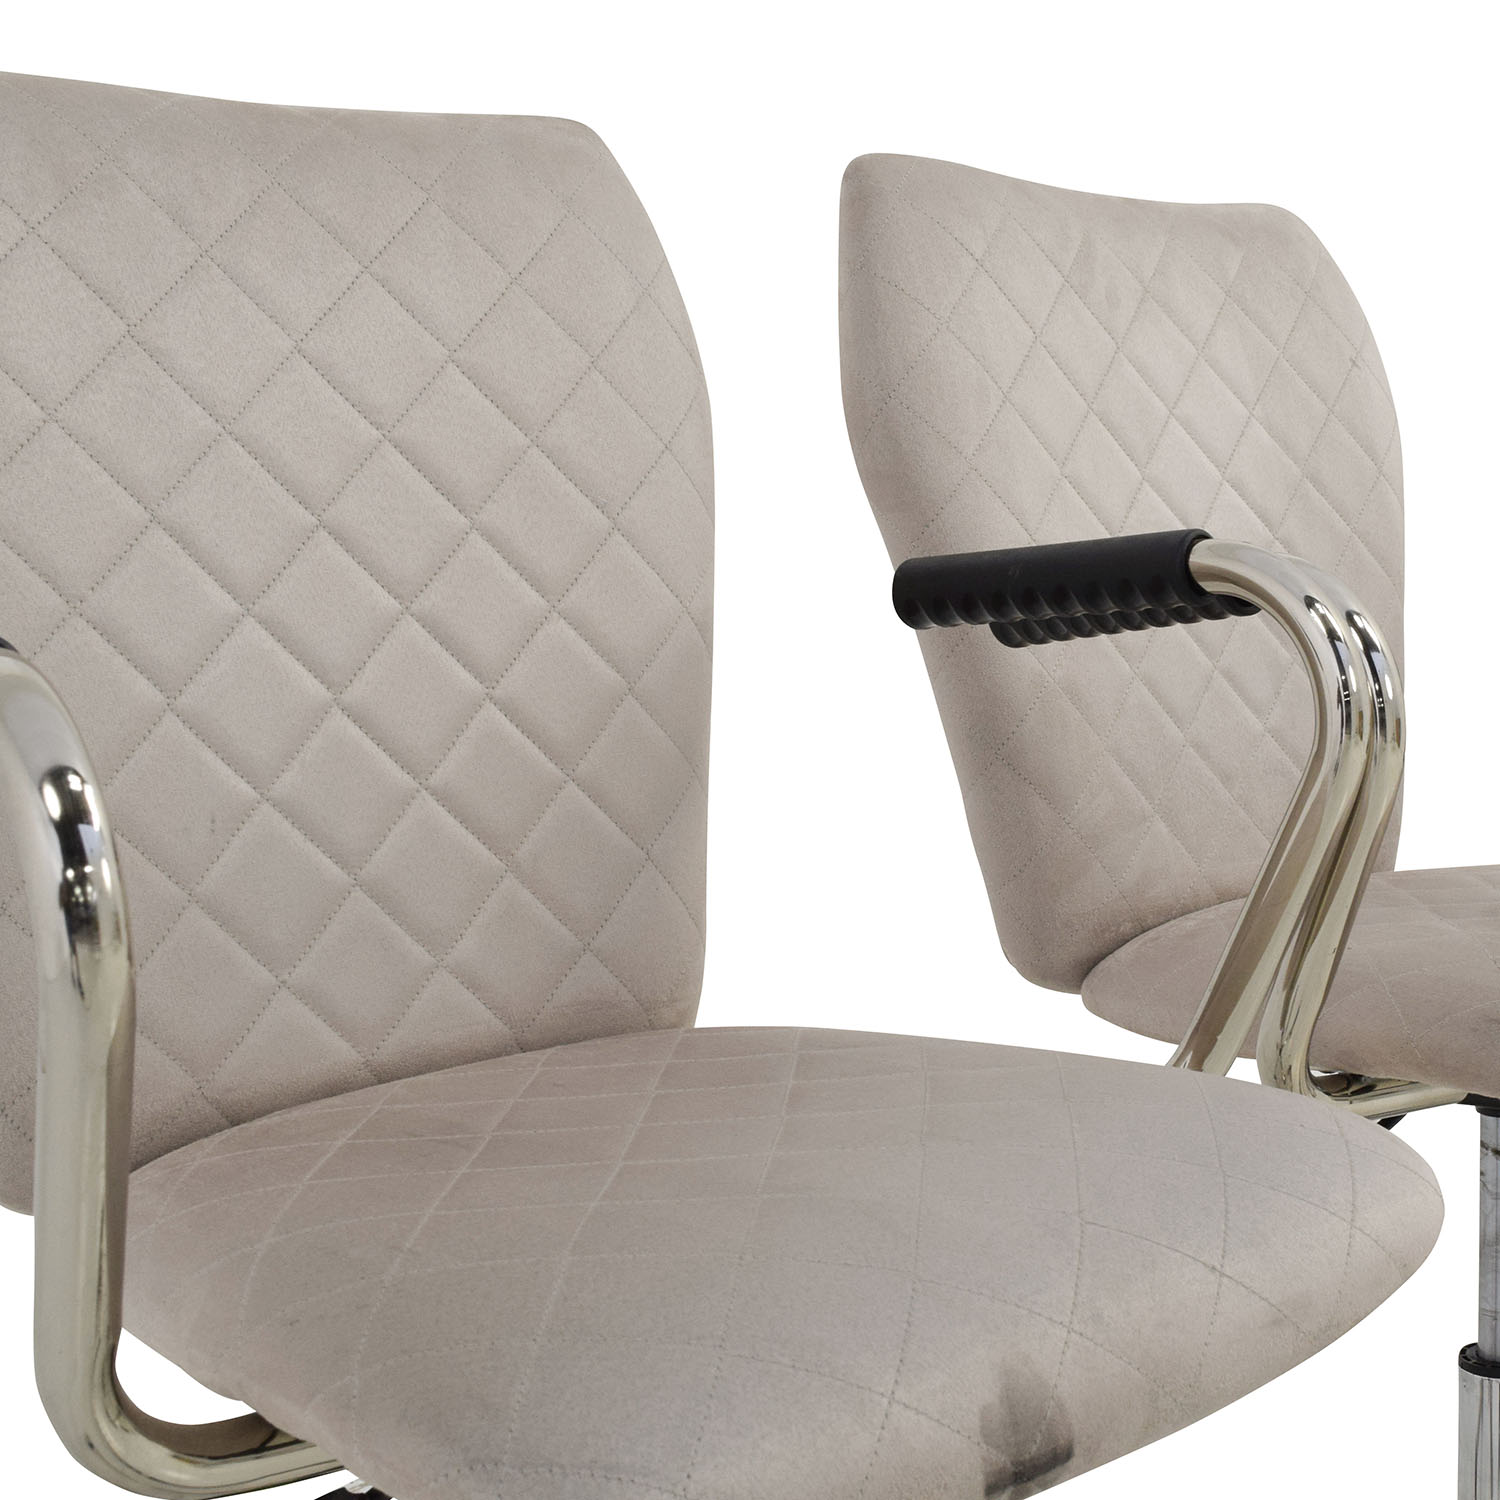 quilted swivel chair revolving olx delhi 90 off beige chairs shop online